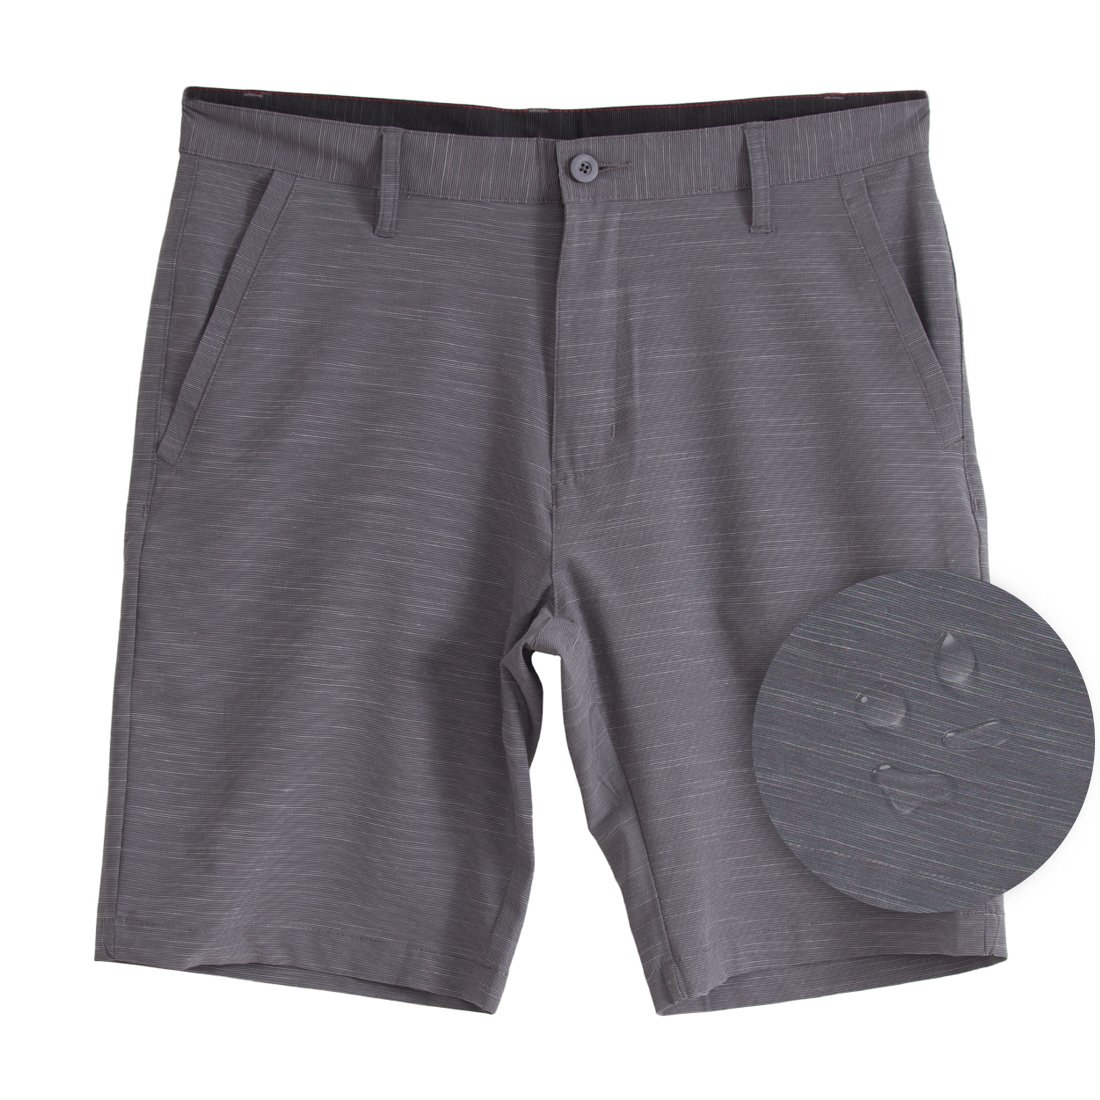 Burnside Hybrid Stretch Shorts for Mens Lightweight Boardshorts Grey - 36